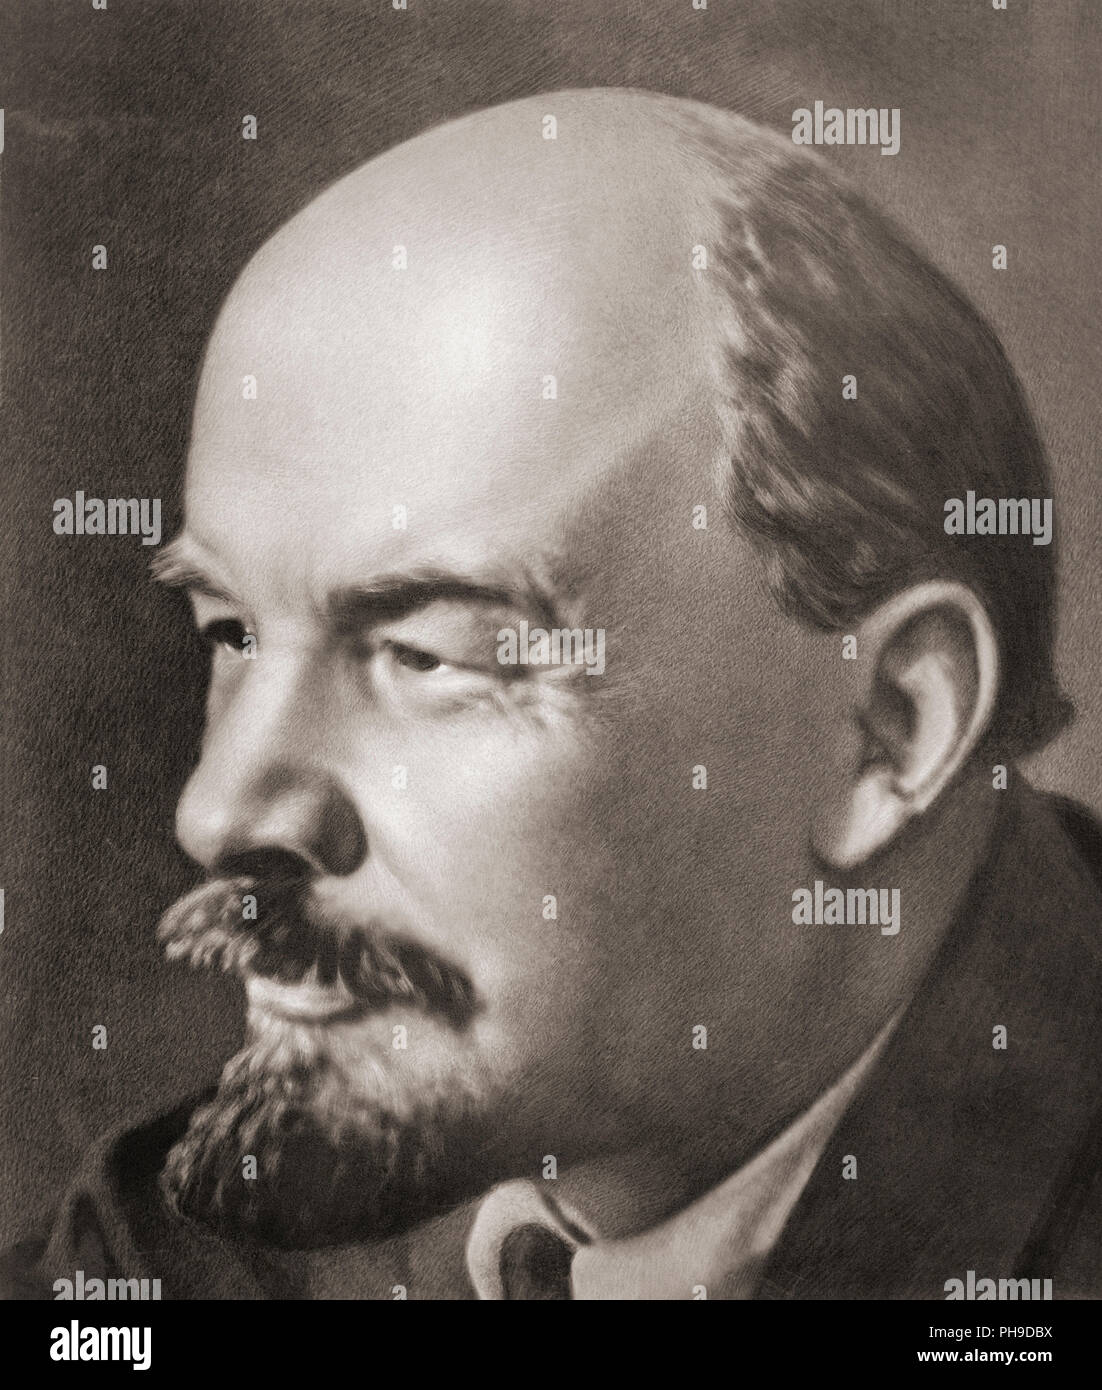 Vladimir Ilyich Ulyanov, known as Lenin, 1870-1924.  Russian politician, political theorist and head of the government of Soviet Russia, 1917-1924. - Stock Image